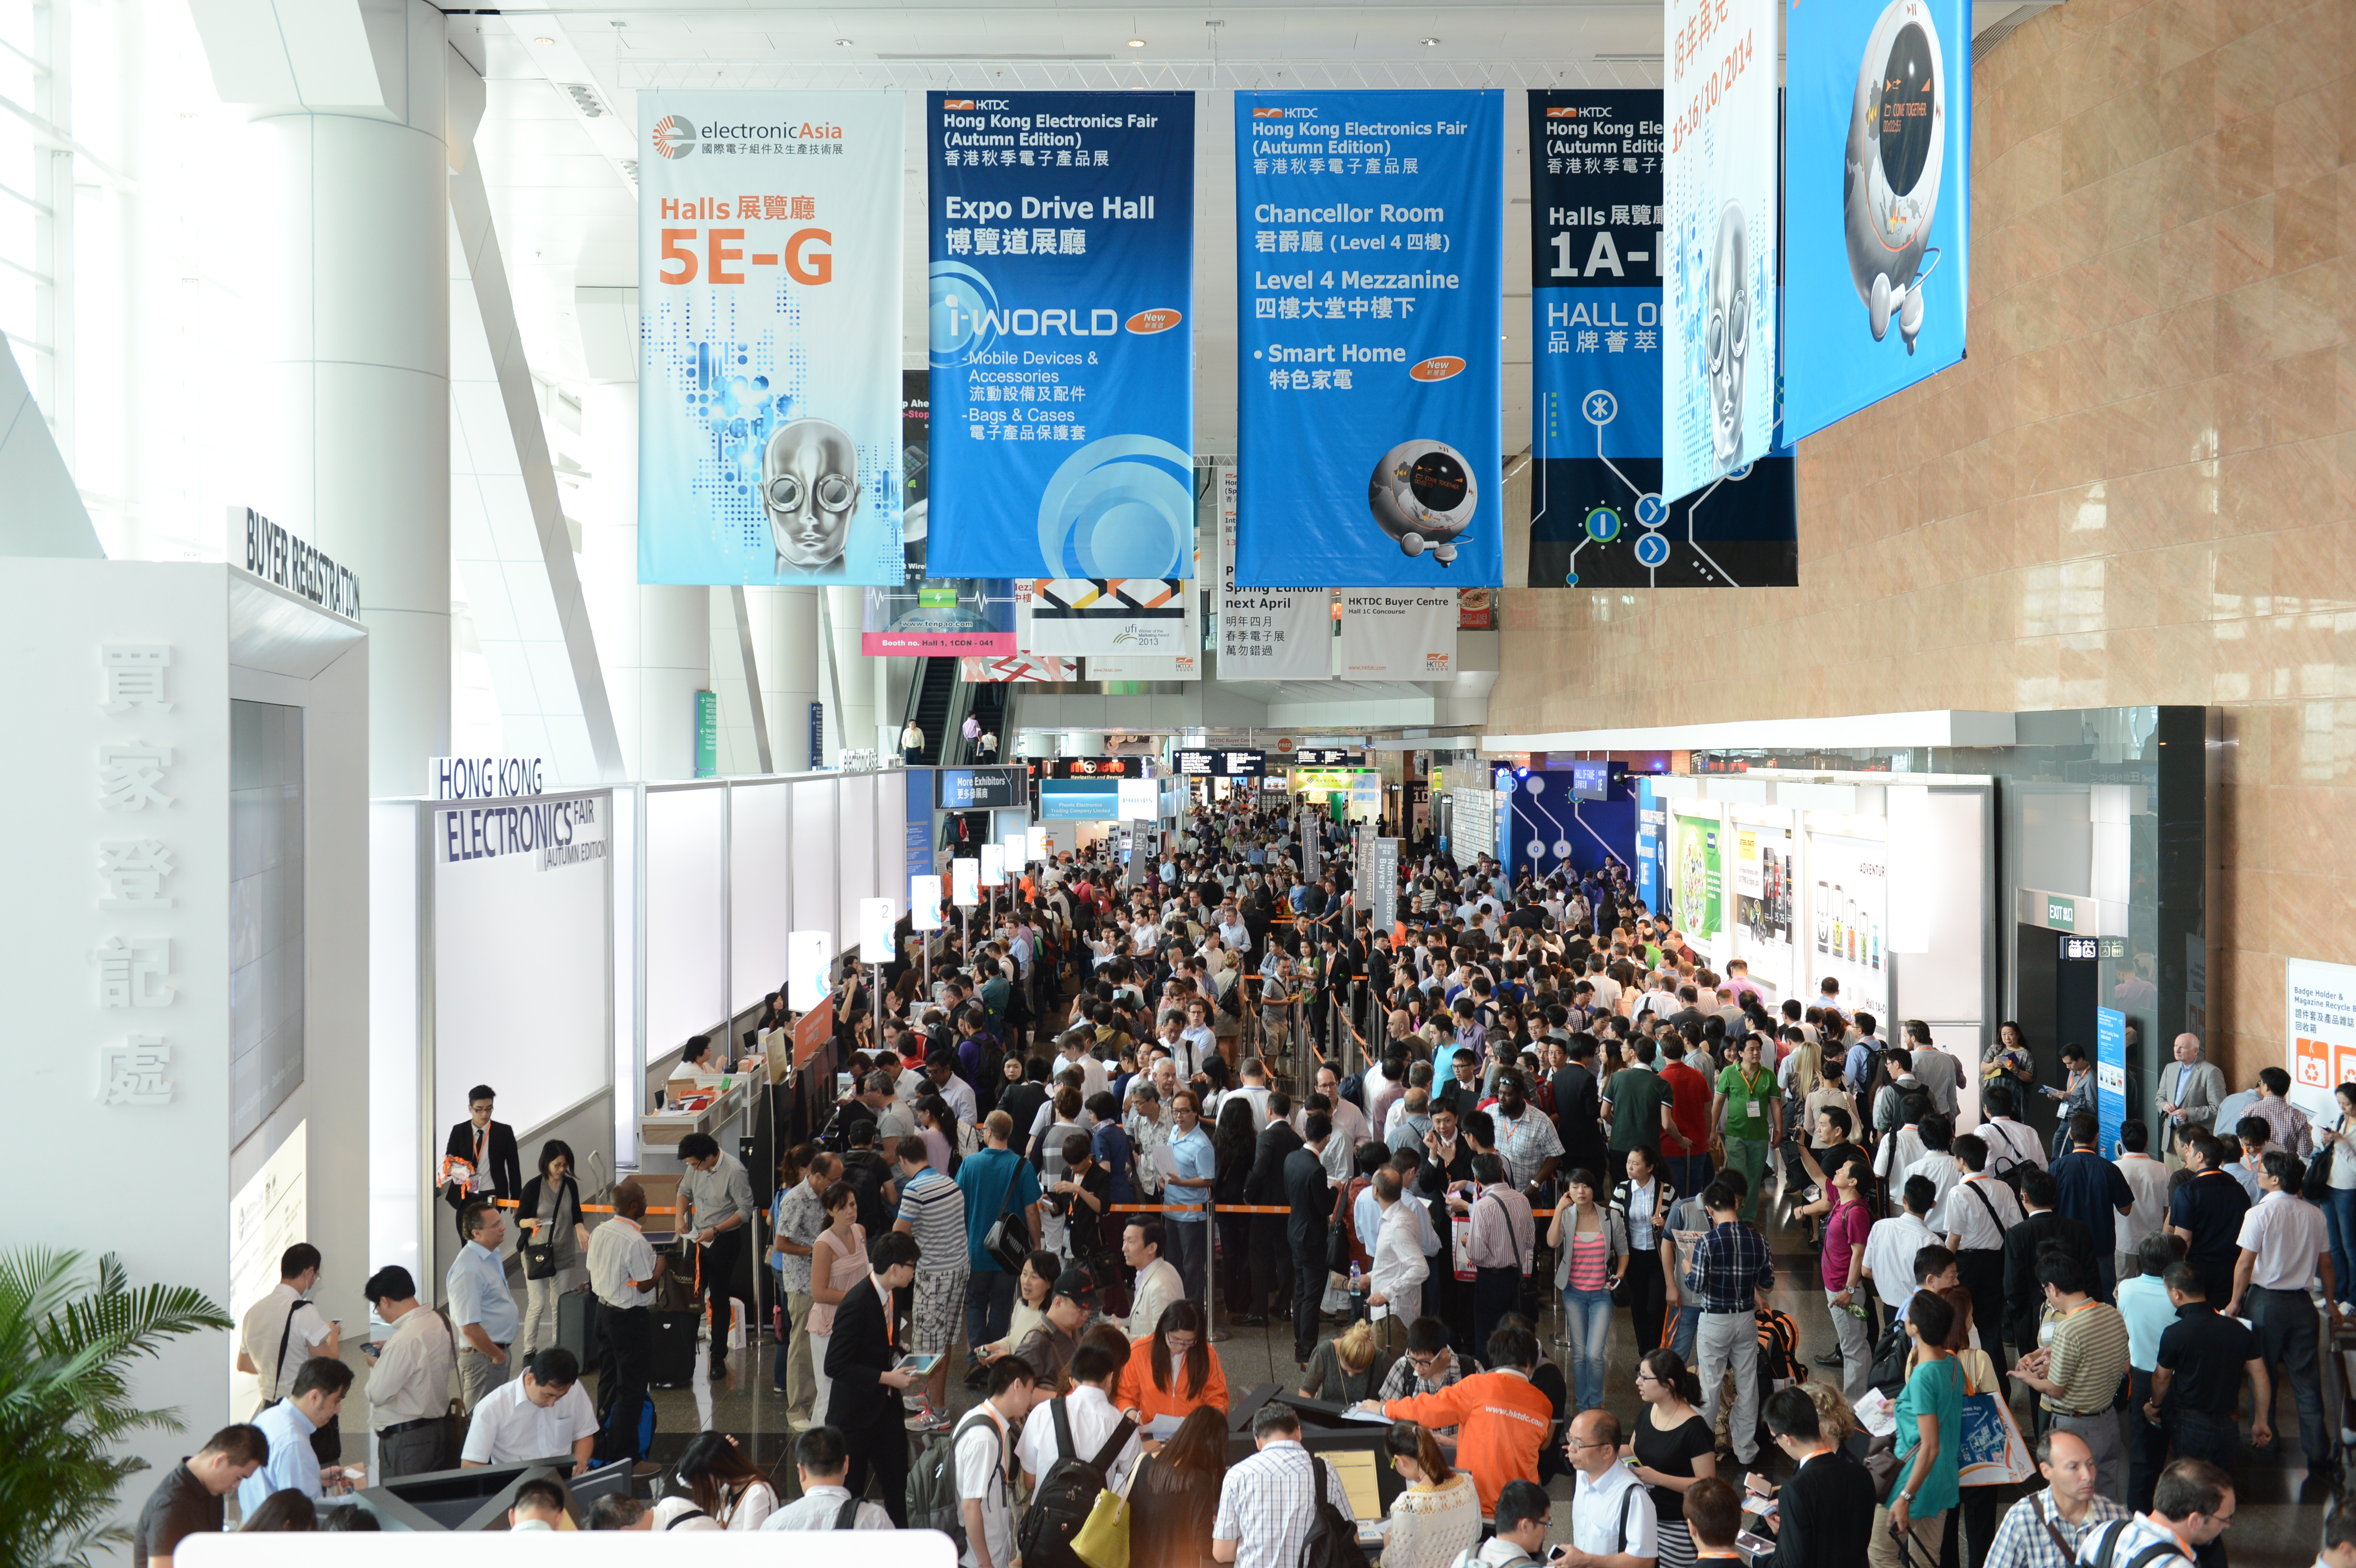 world s top electronics fair and electronicasia open hktdc